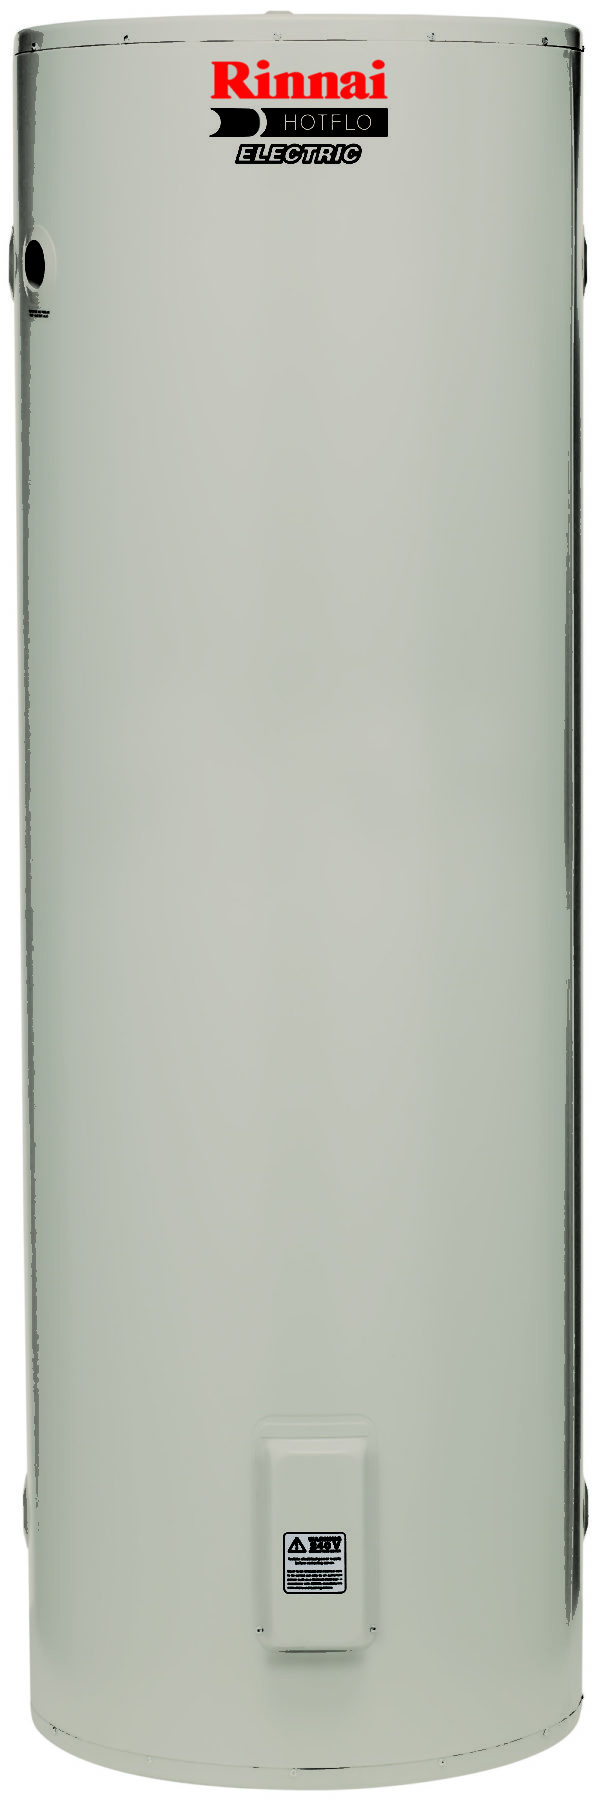 400L Rinnai Electric Hotflo Twin element